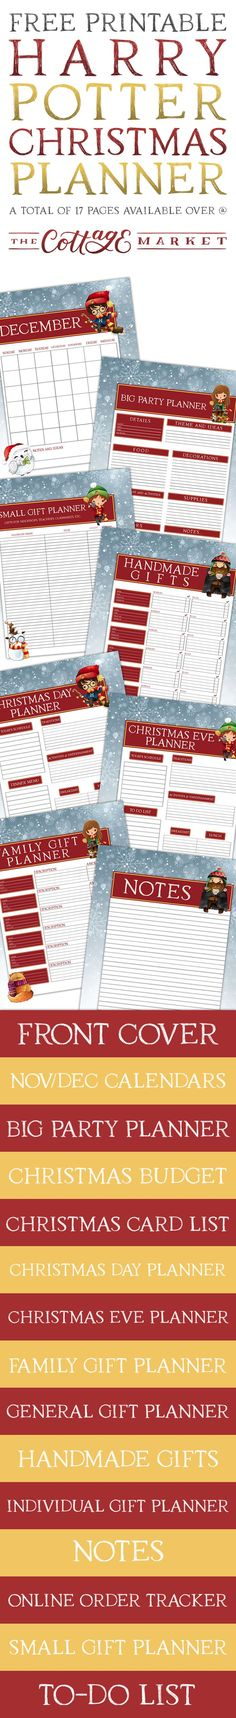 Free Printable Harry Potter Christmas Planner